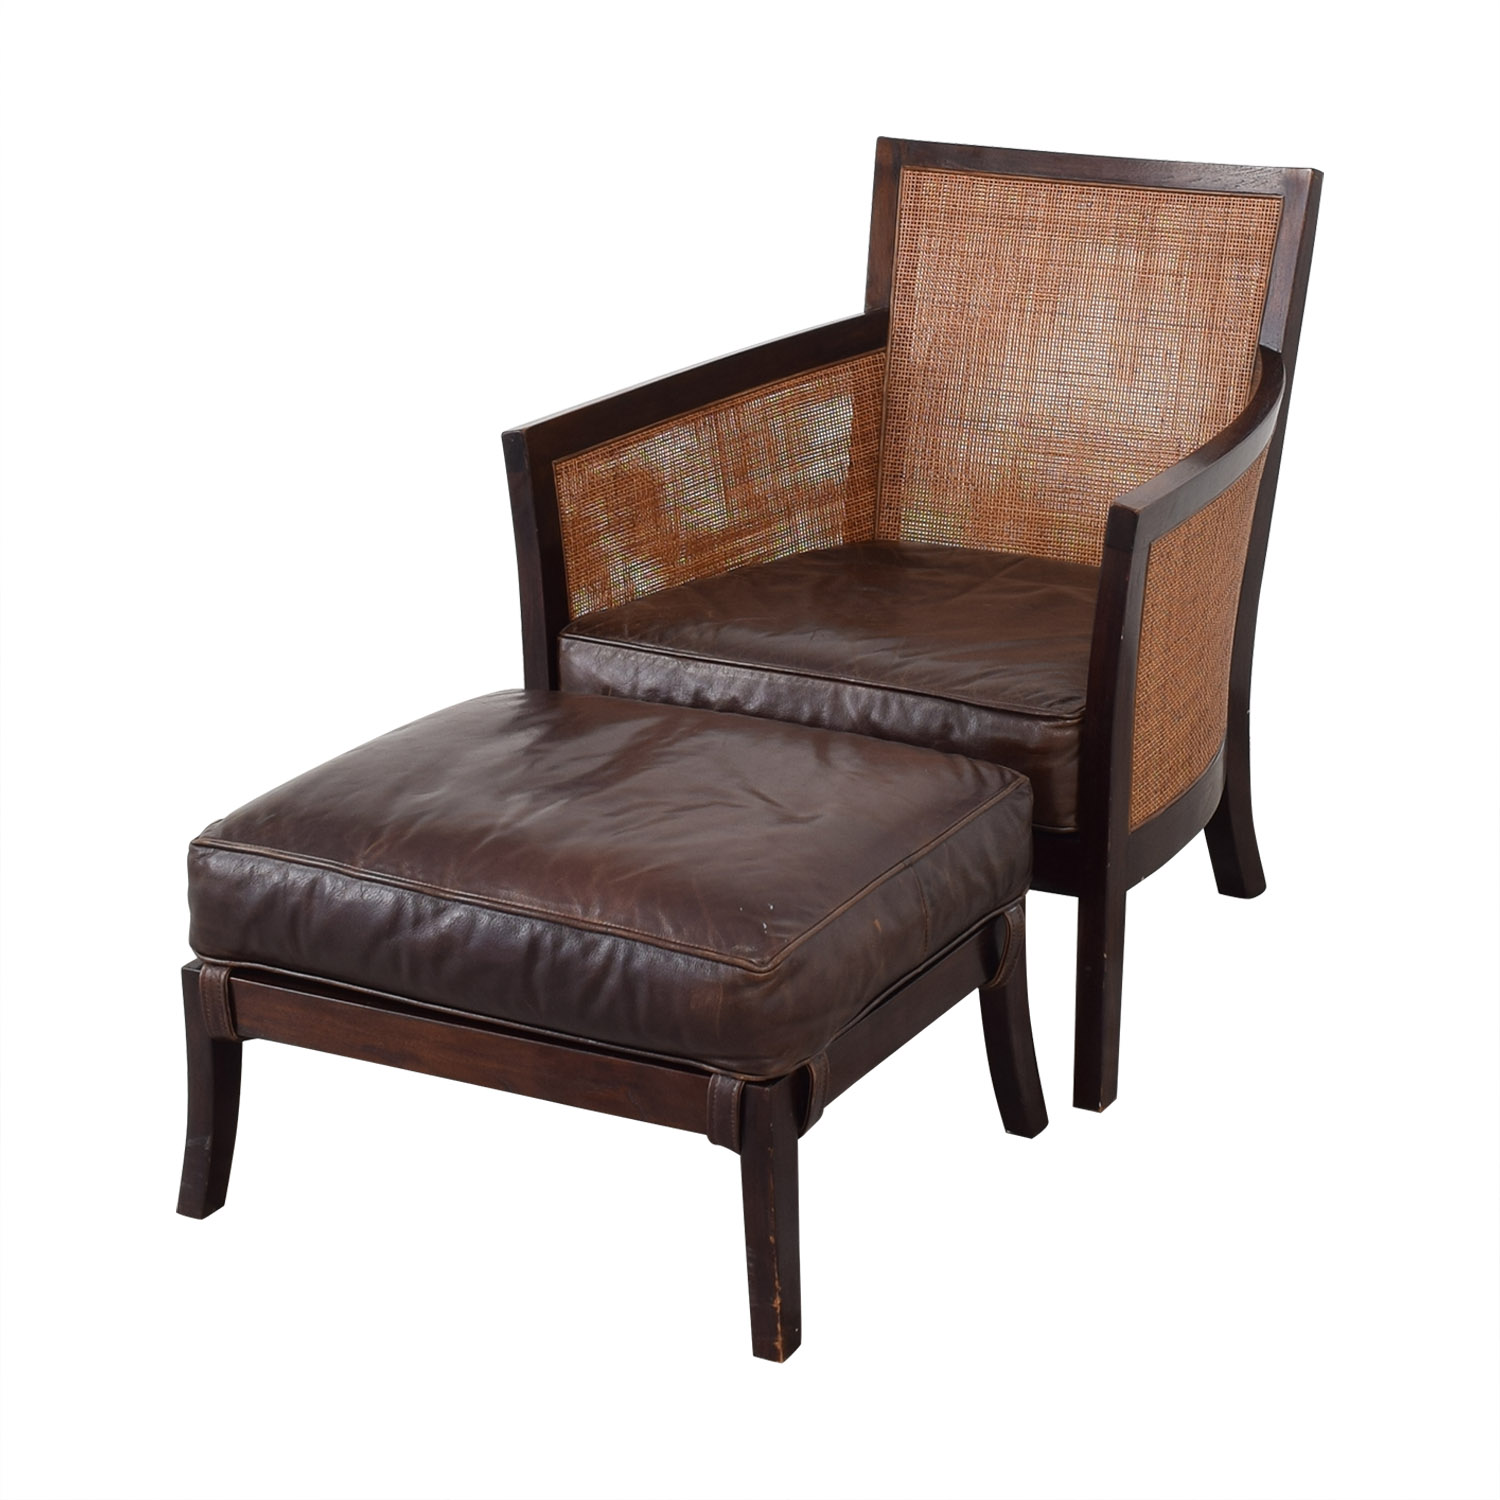 Pictures On Crate And Barrel Arm Chair And Ottoman